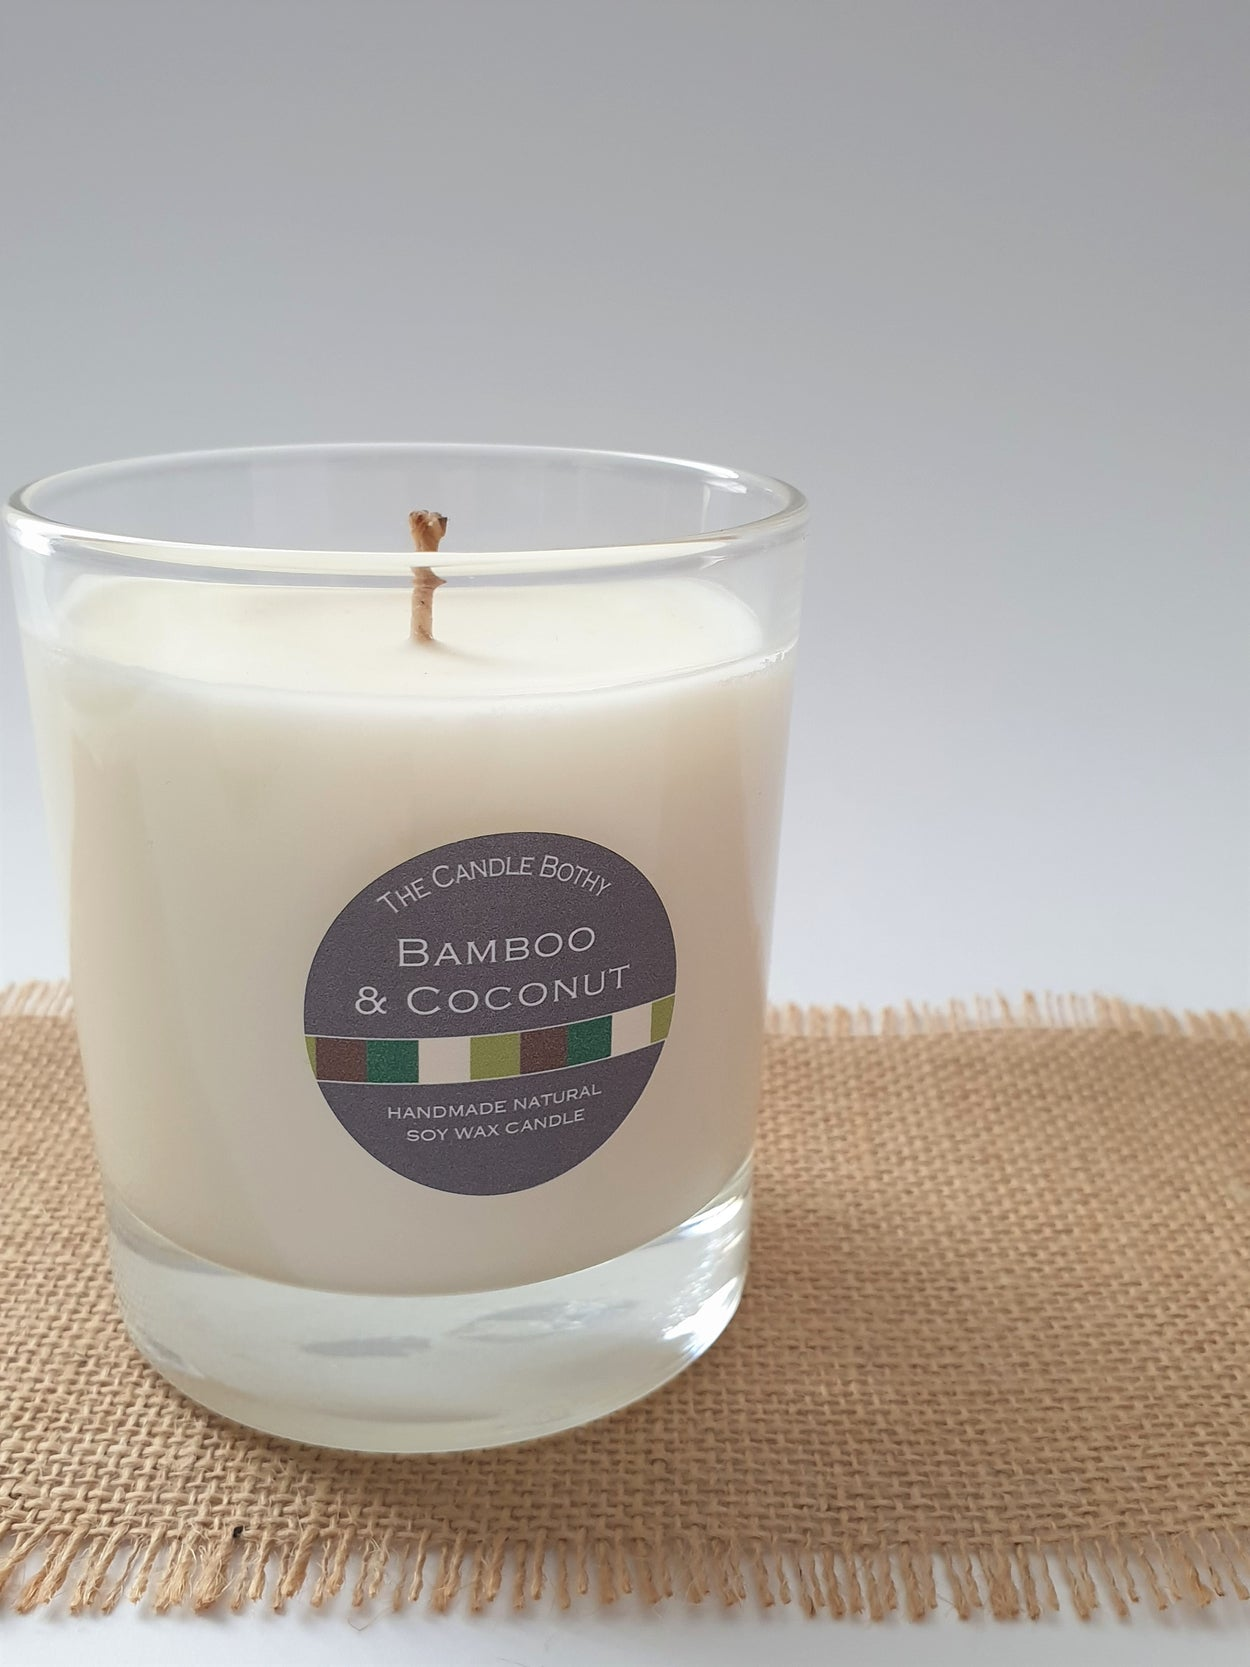 Soy wax candle - Bamboo and Coconut